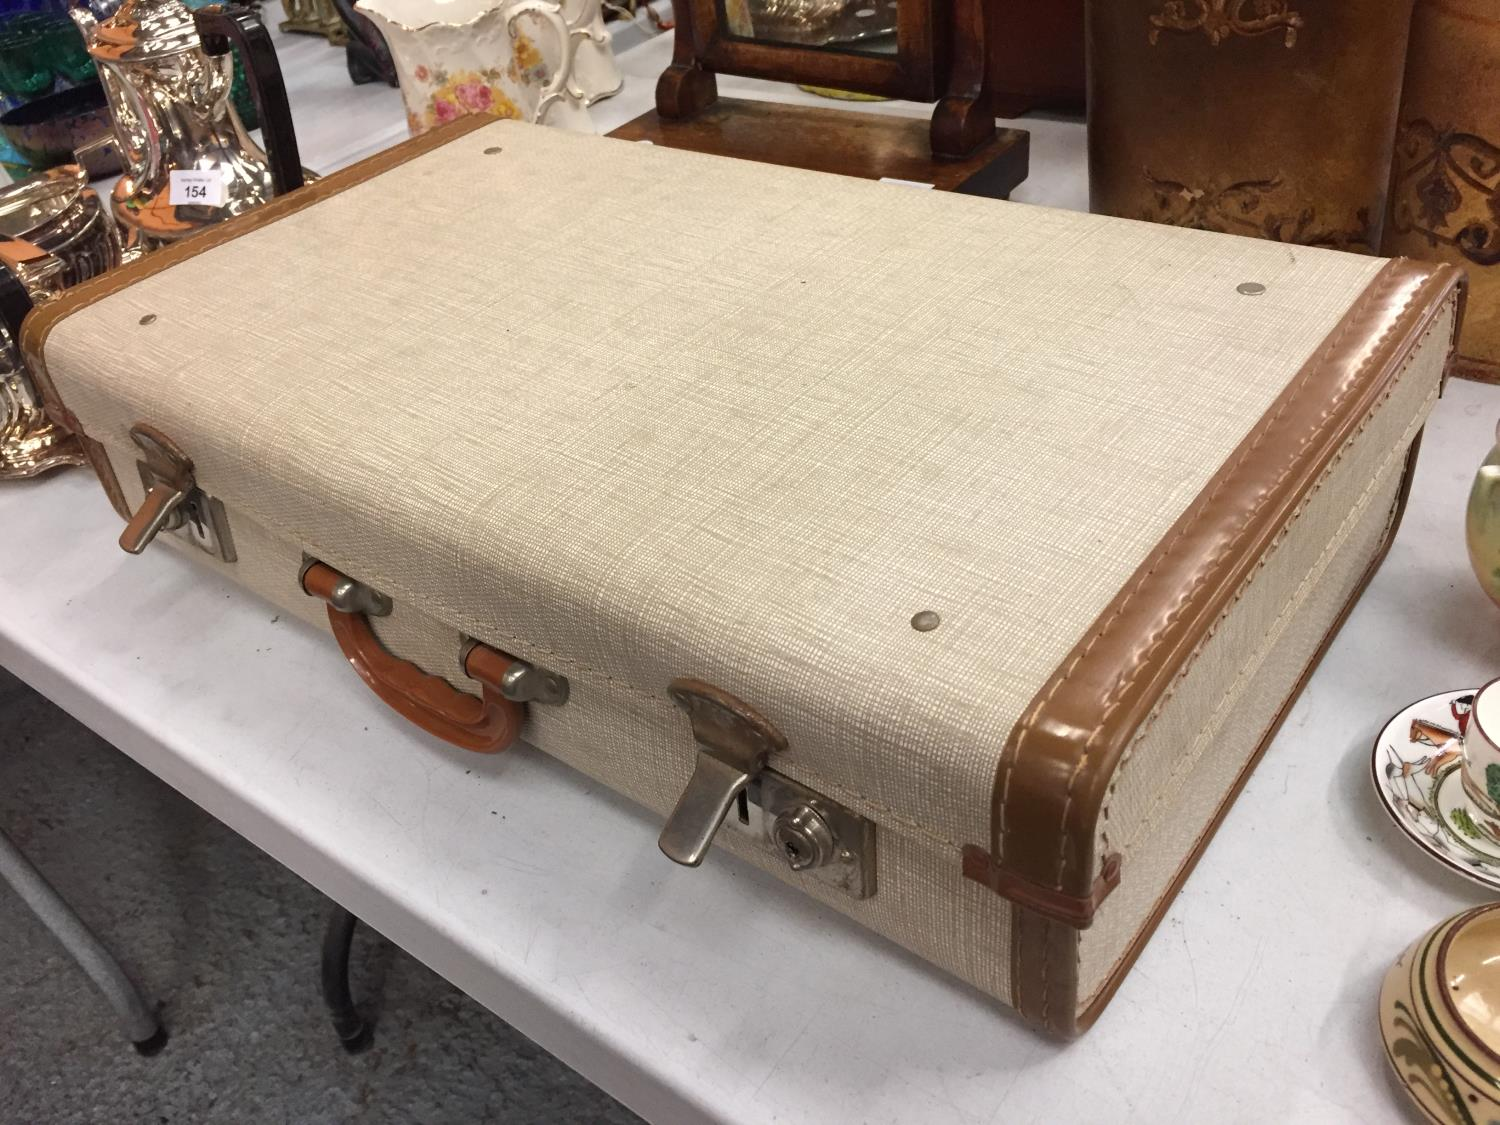 A VINTAGE FOUR PERSON PICNIC SET IN CARRY CASE - Image 5 of 5